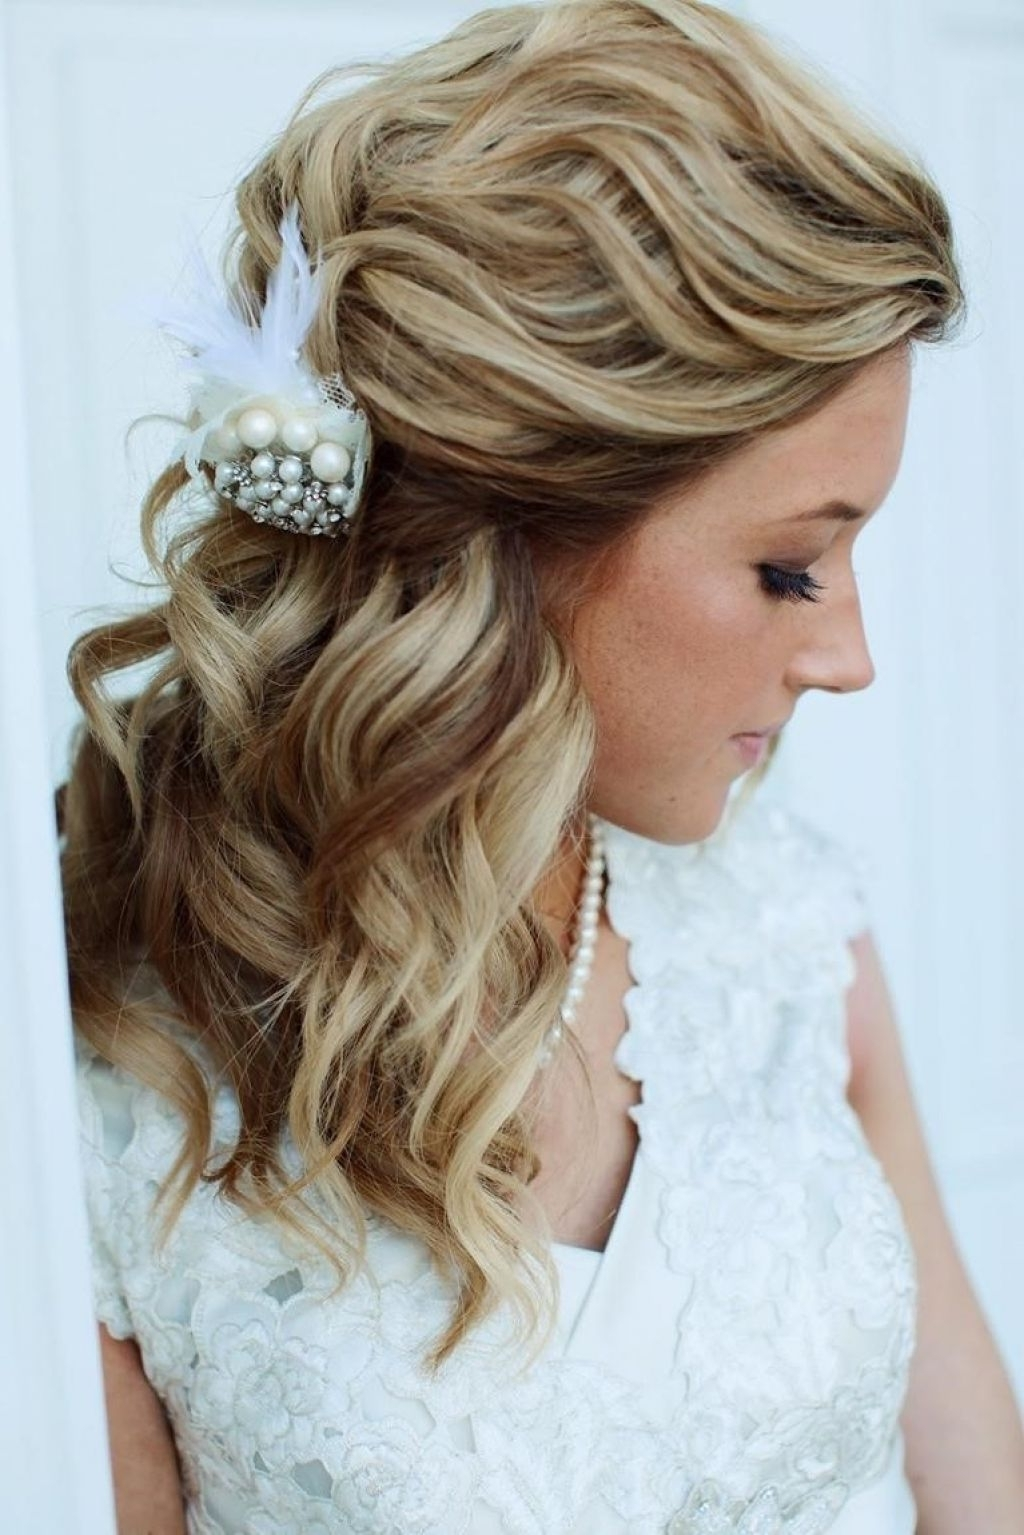 √ 24+ Nice Wedding Hairstyles For Shoulder Length Hair: Hairstyle Within 2018 Wedding Hairstyles For Medium Length Hair (View 3 of 15)